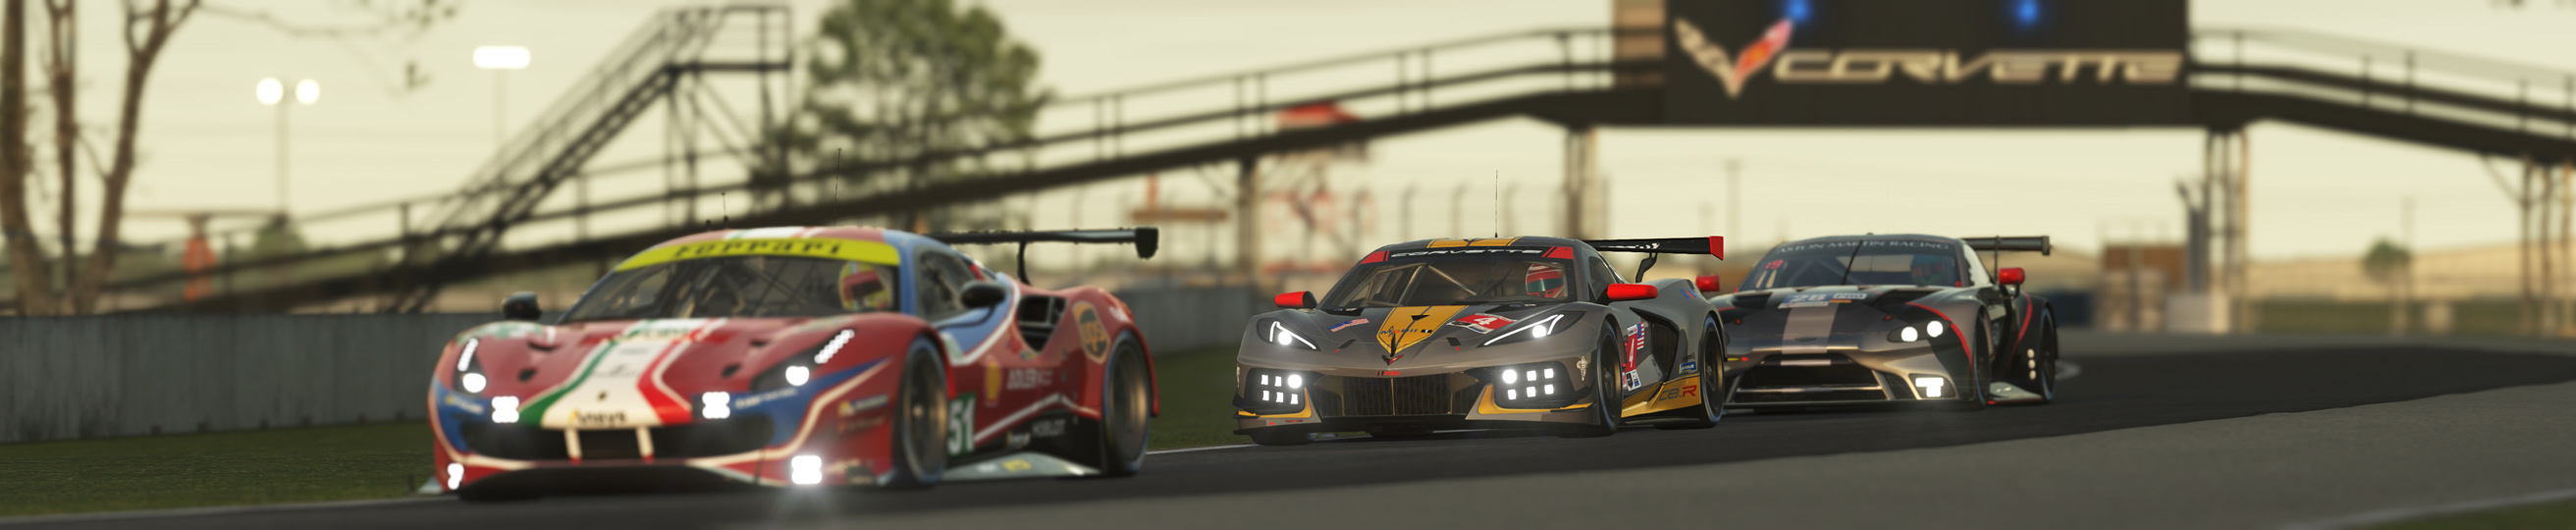 5 rFACTOR 2 CORVETTE C8 & FERRARI GTE at SEBRING crop copy.jpg